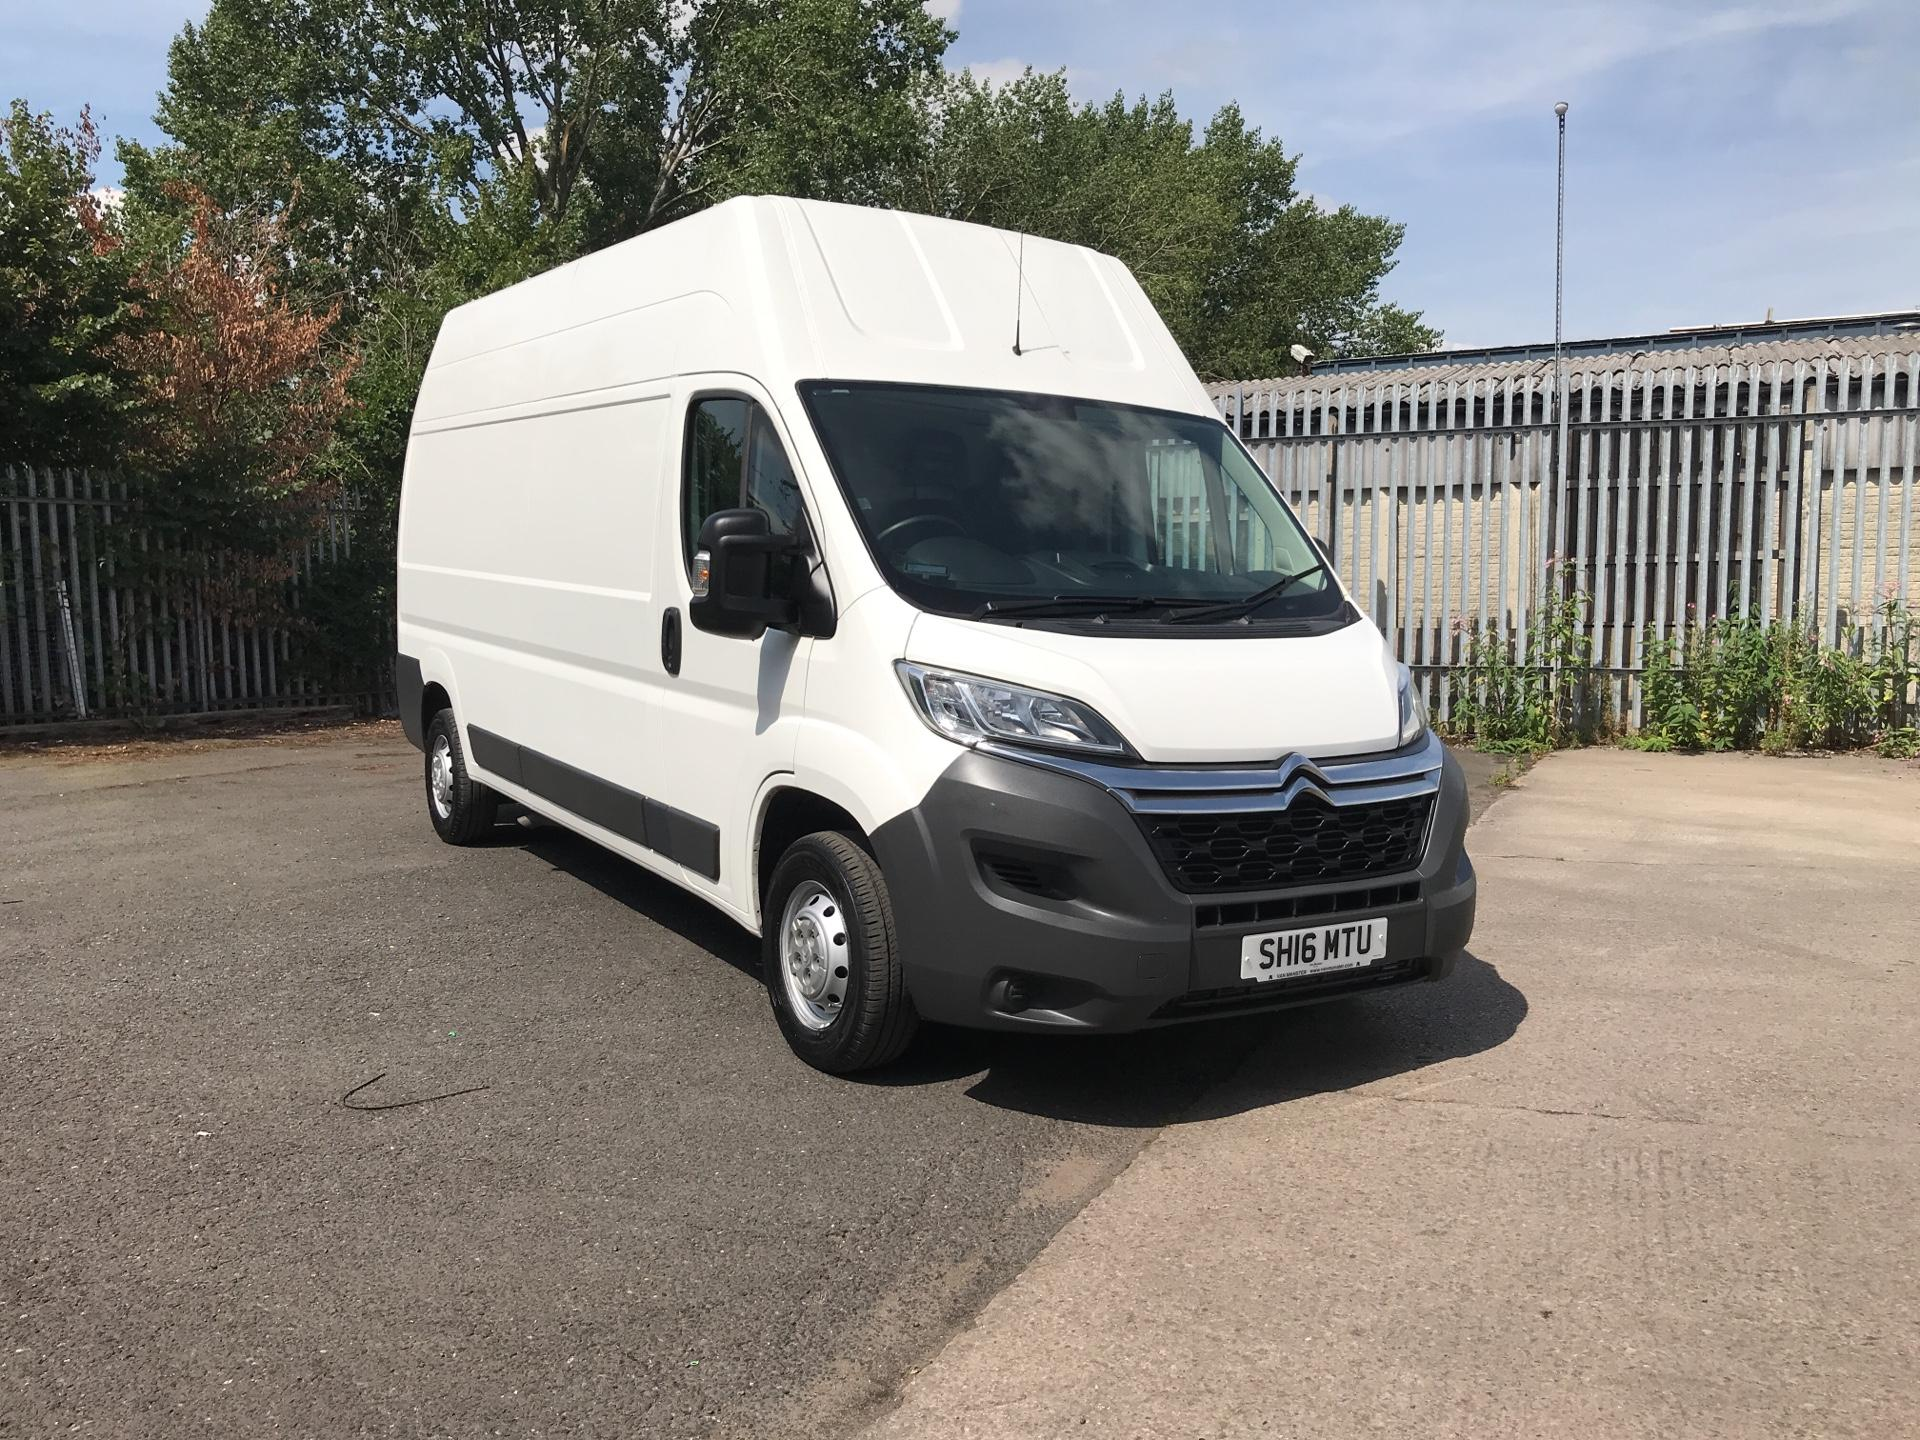 2016 Citroen Relay L3 H3 2.2HDI 130PS ENTERPRISE  EXTRA HIGH ROOF (SH16MTU)